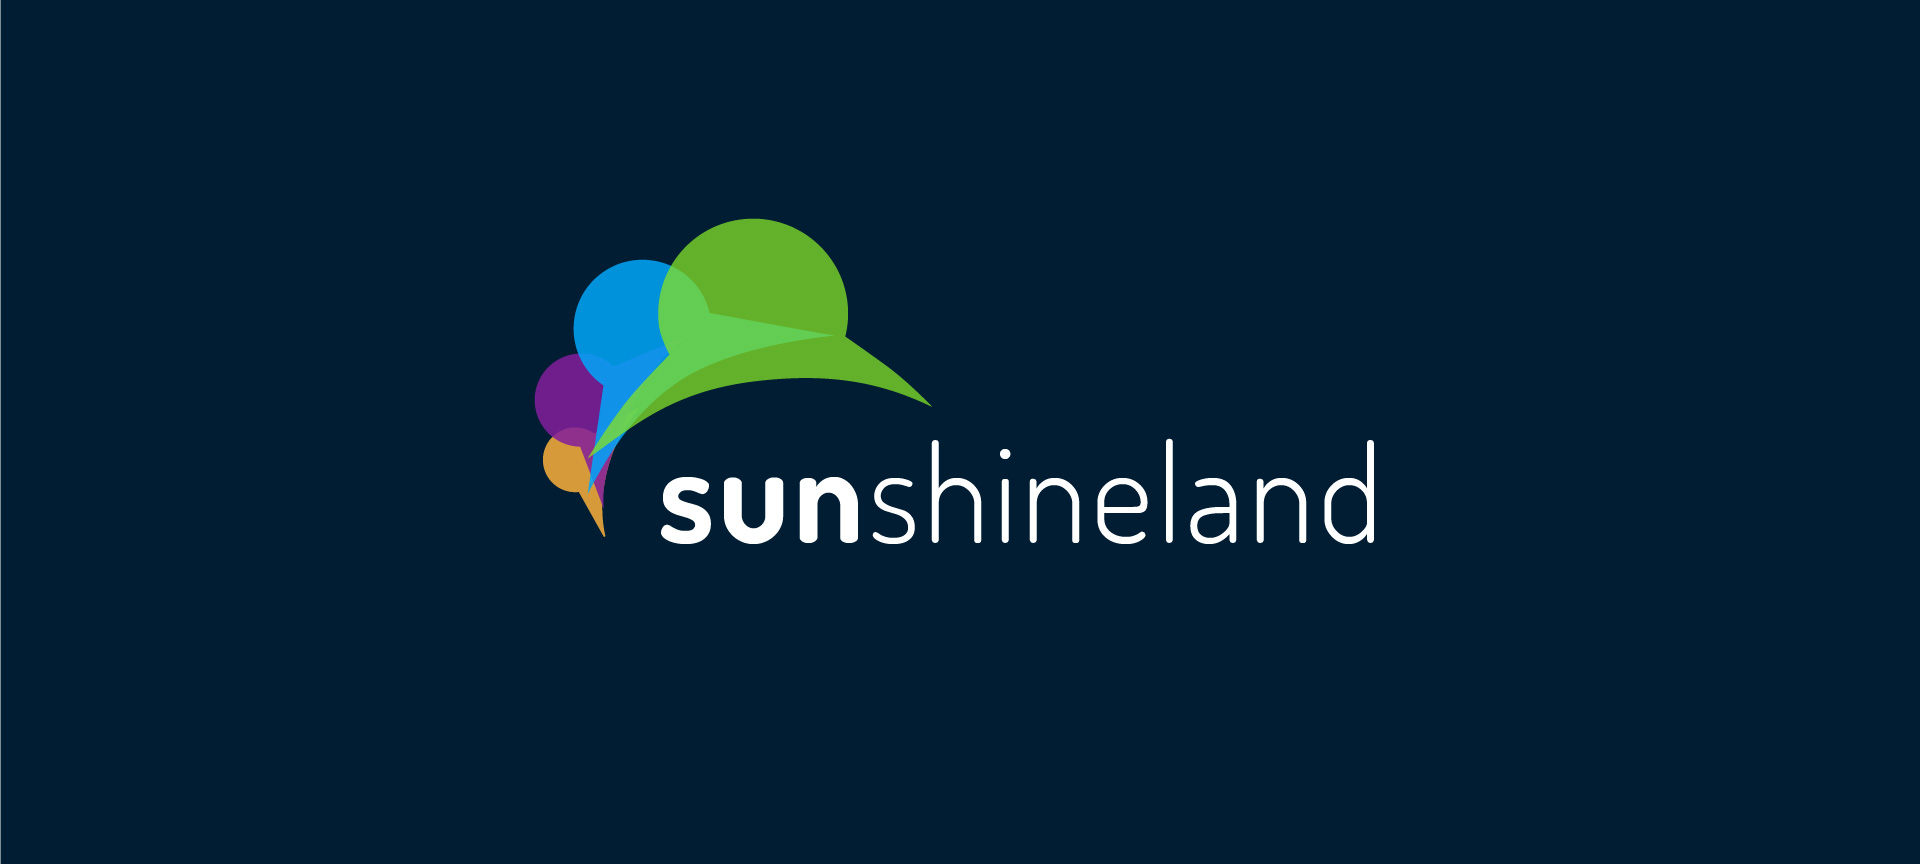 sunshineland-logo-file